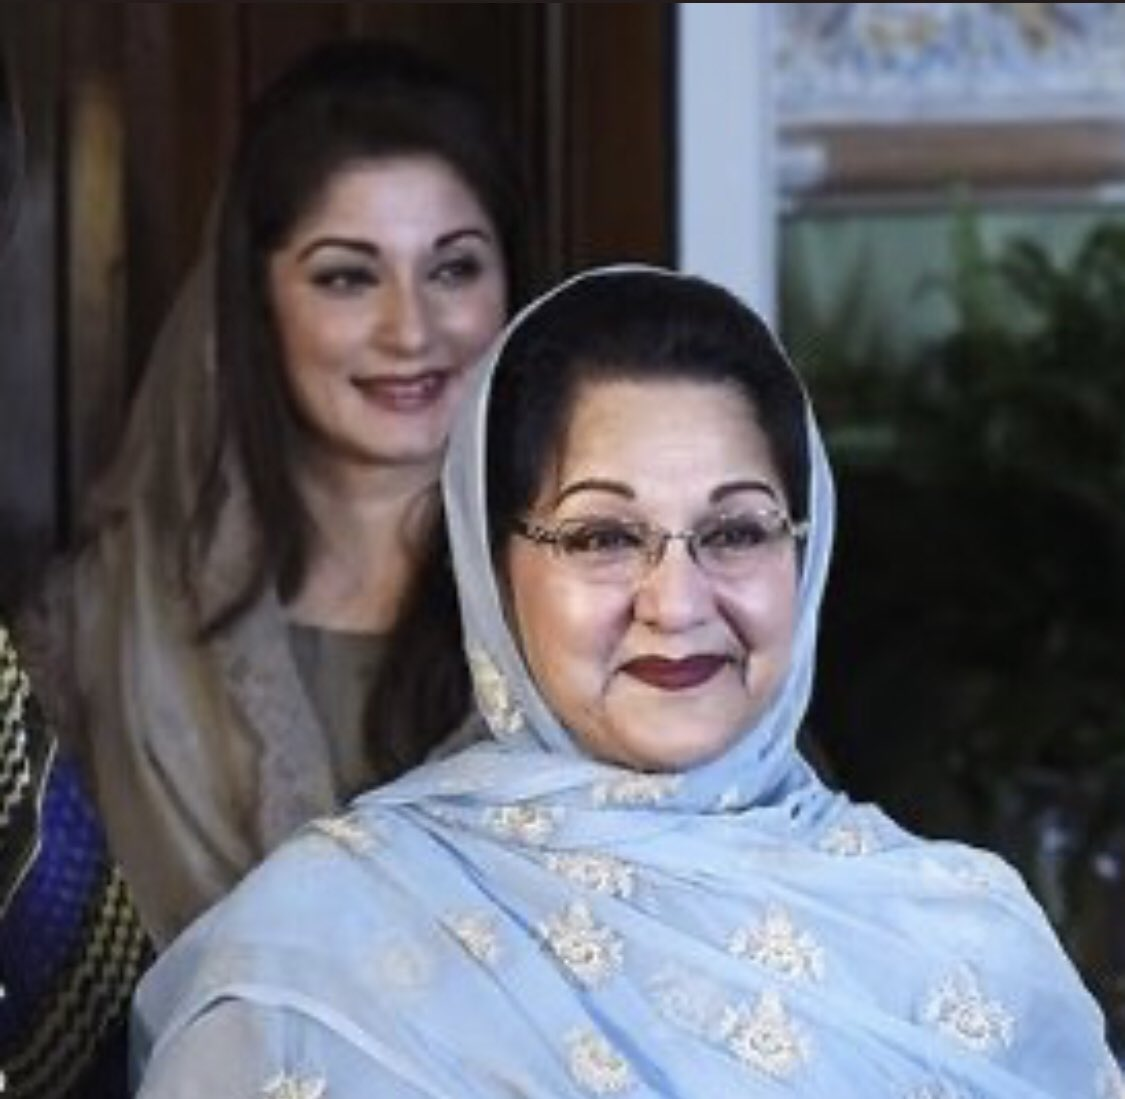 Gone but never forgotten. First Lady of Pakistan for 3 terms. A lady that made history. Stood by her husband a 3 times elected PM through everything. May Allah SWT grant her a place in paradise. May Allah SWT bestow his mercy upon her family and shower them with his blessings. <br>http://pic.twitter.com/CNLlobLu55